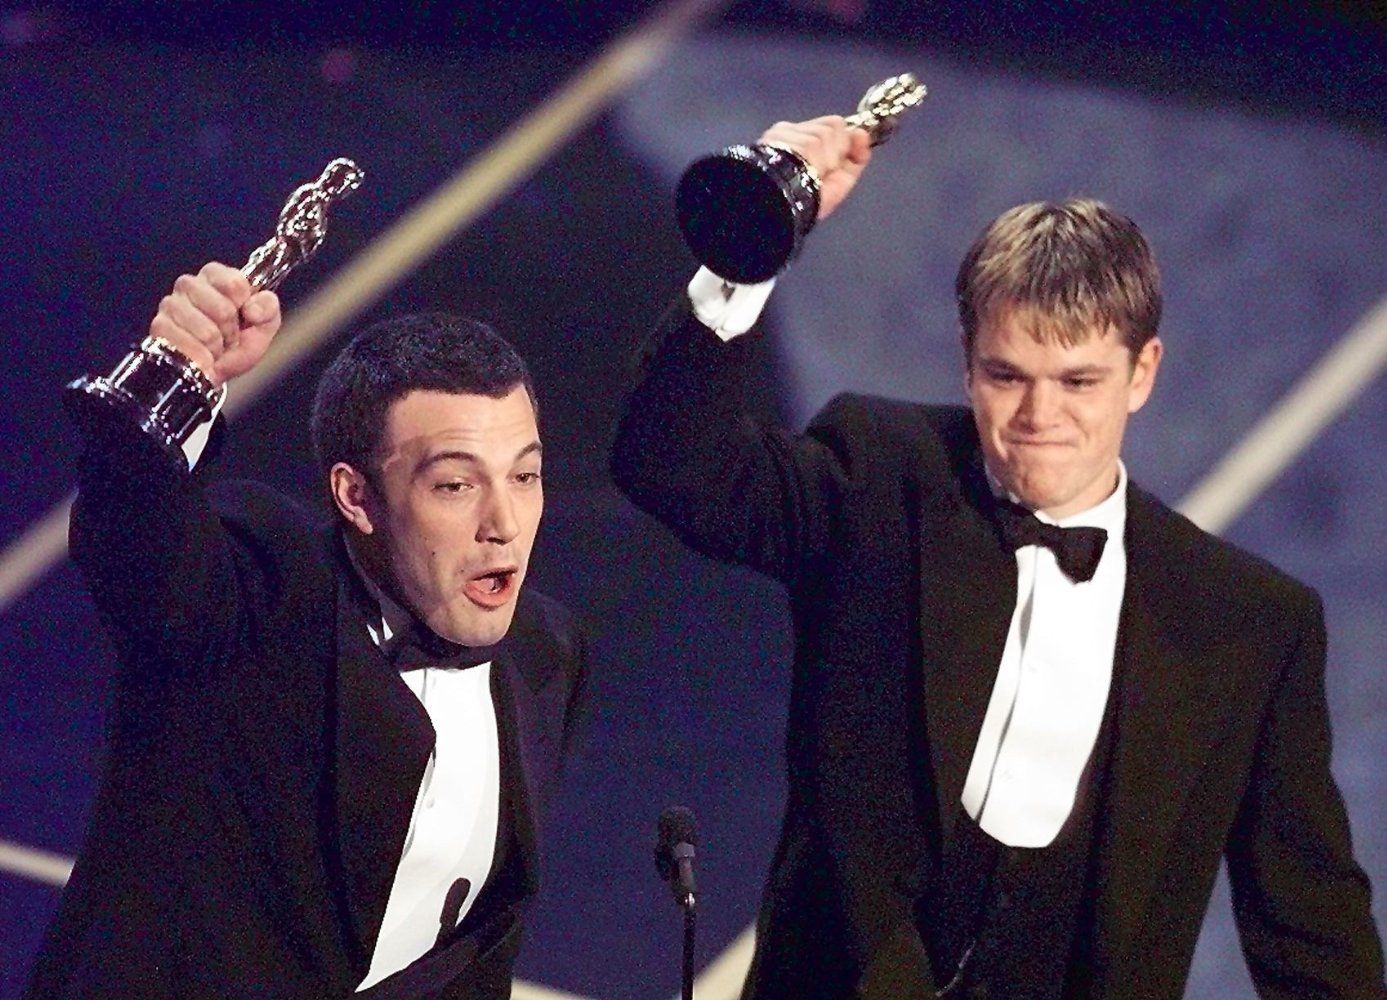 Memorable Oscar Moments Matt Damon Matt Damon Ben Affleck Good Will Hunting